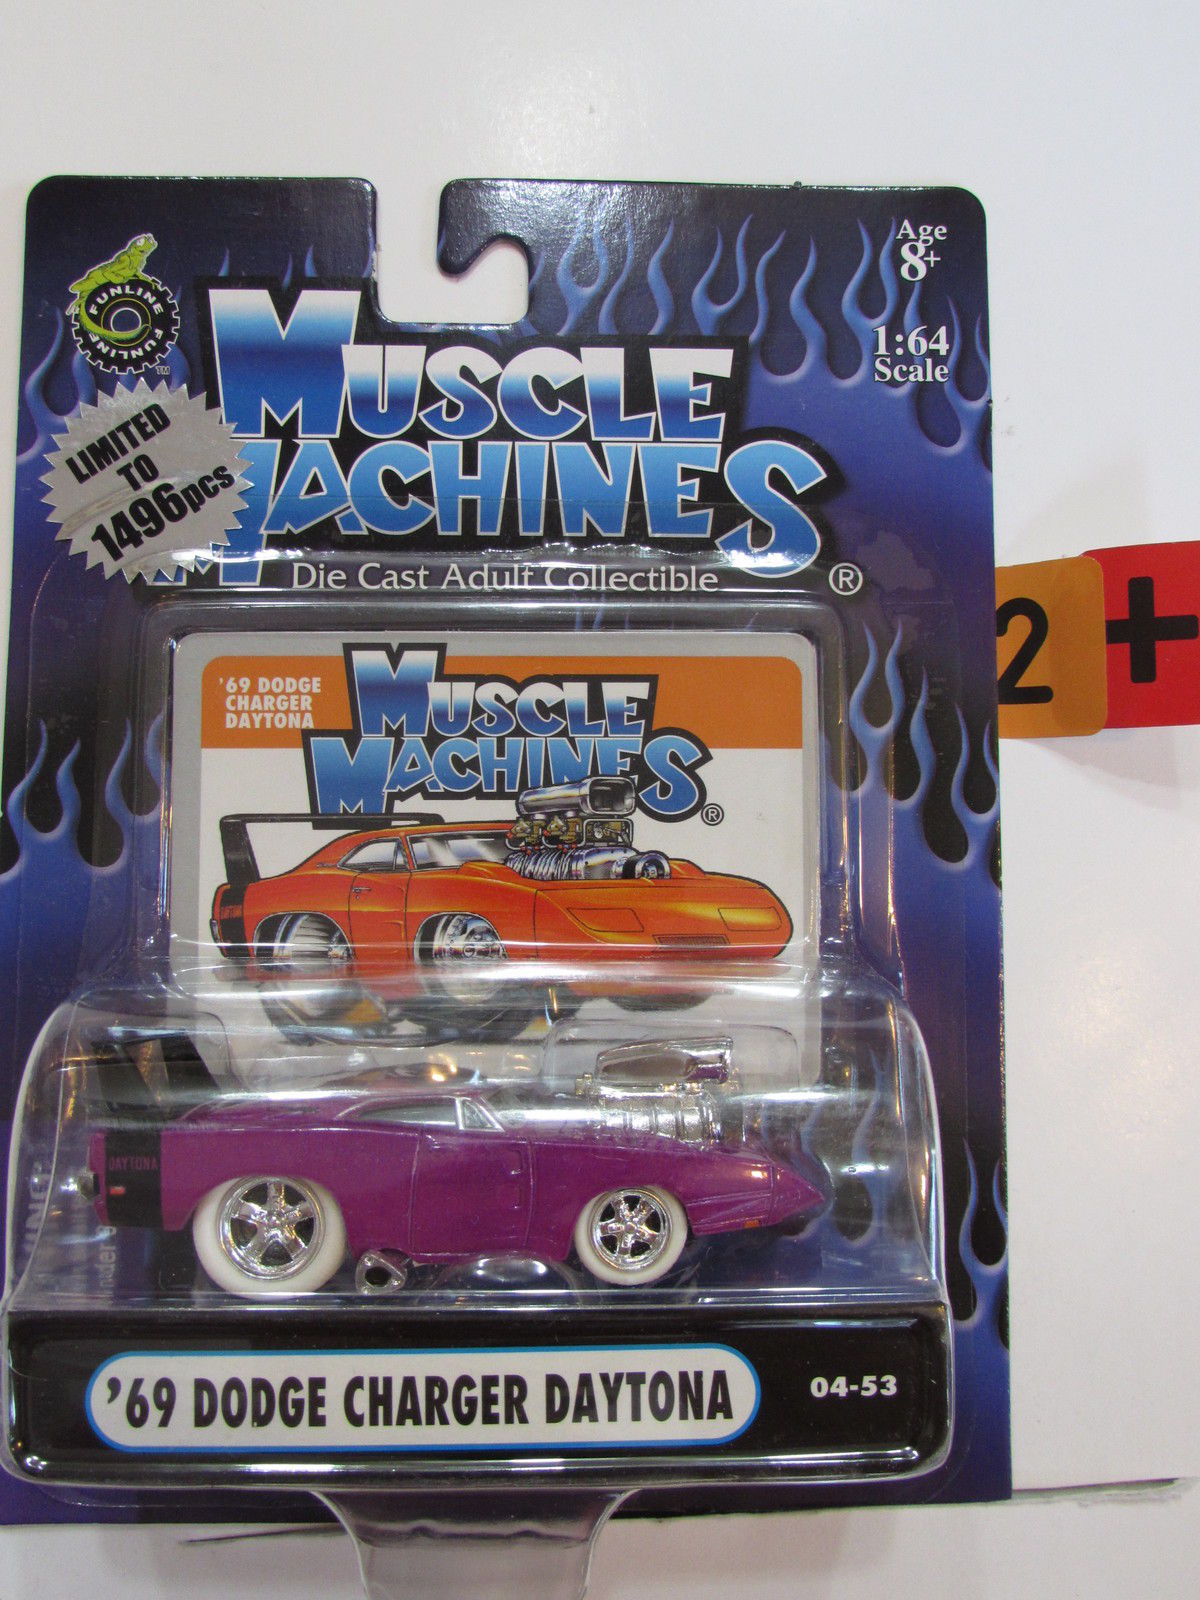 MUSCLE MACHINES '69 DODGE CHARGER DAYTONA CHASE SCALE 1:64